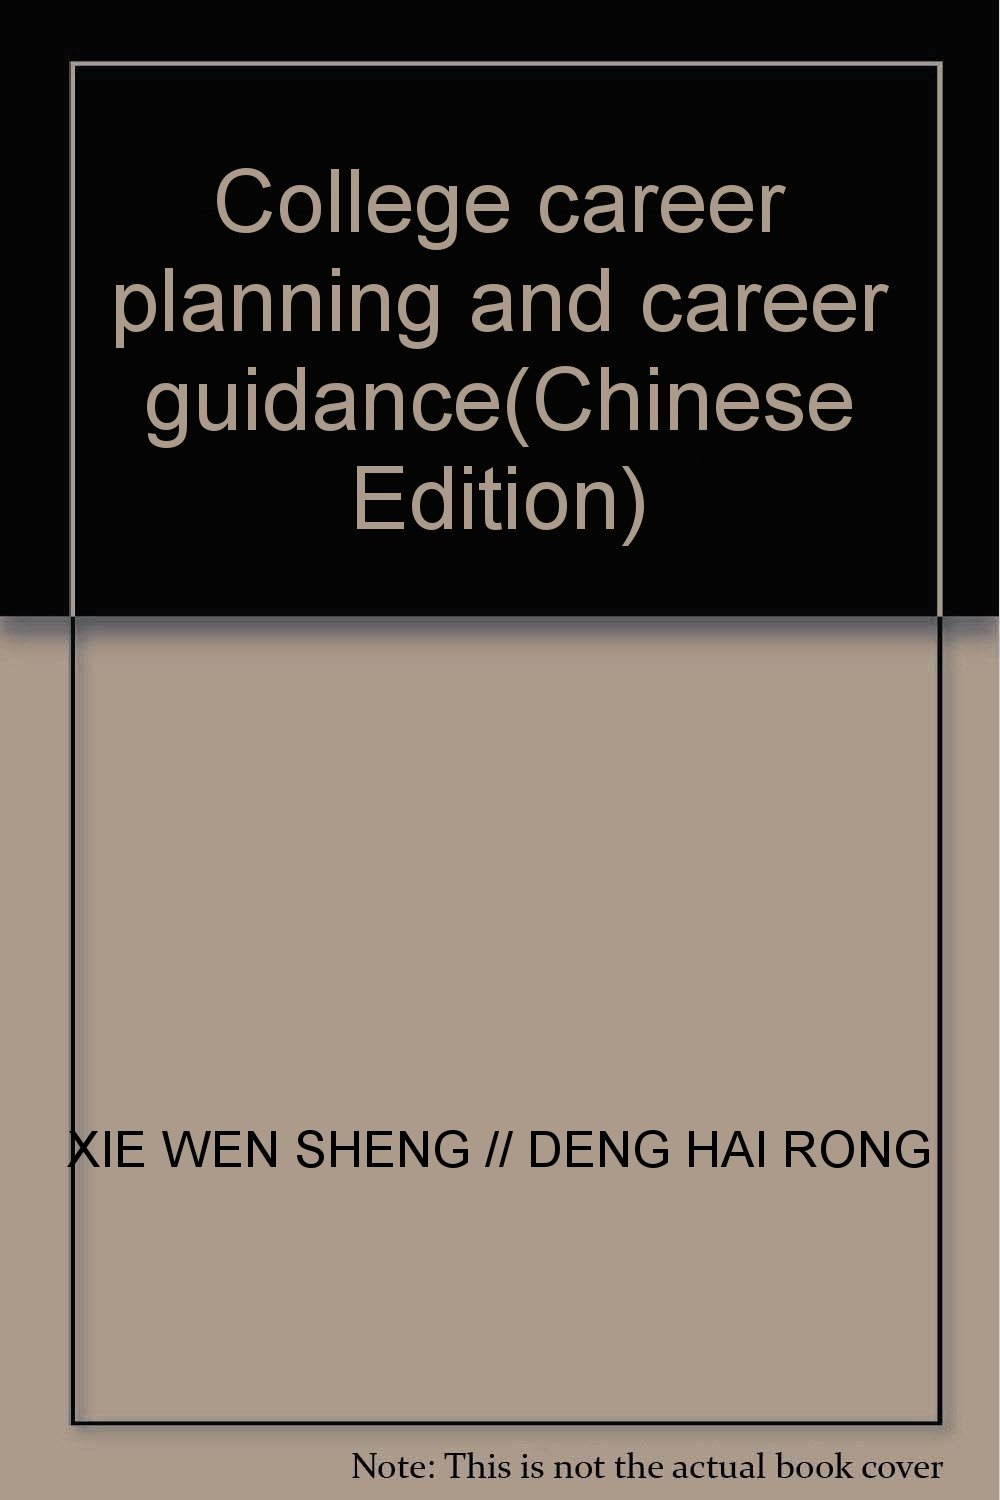 Download College career planning and career guidance(Chinese Edition) ebook